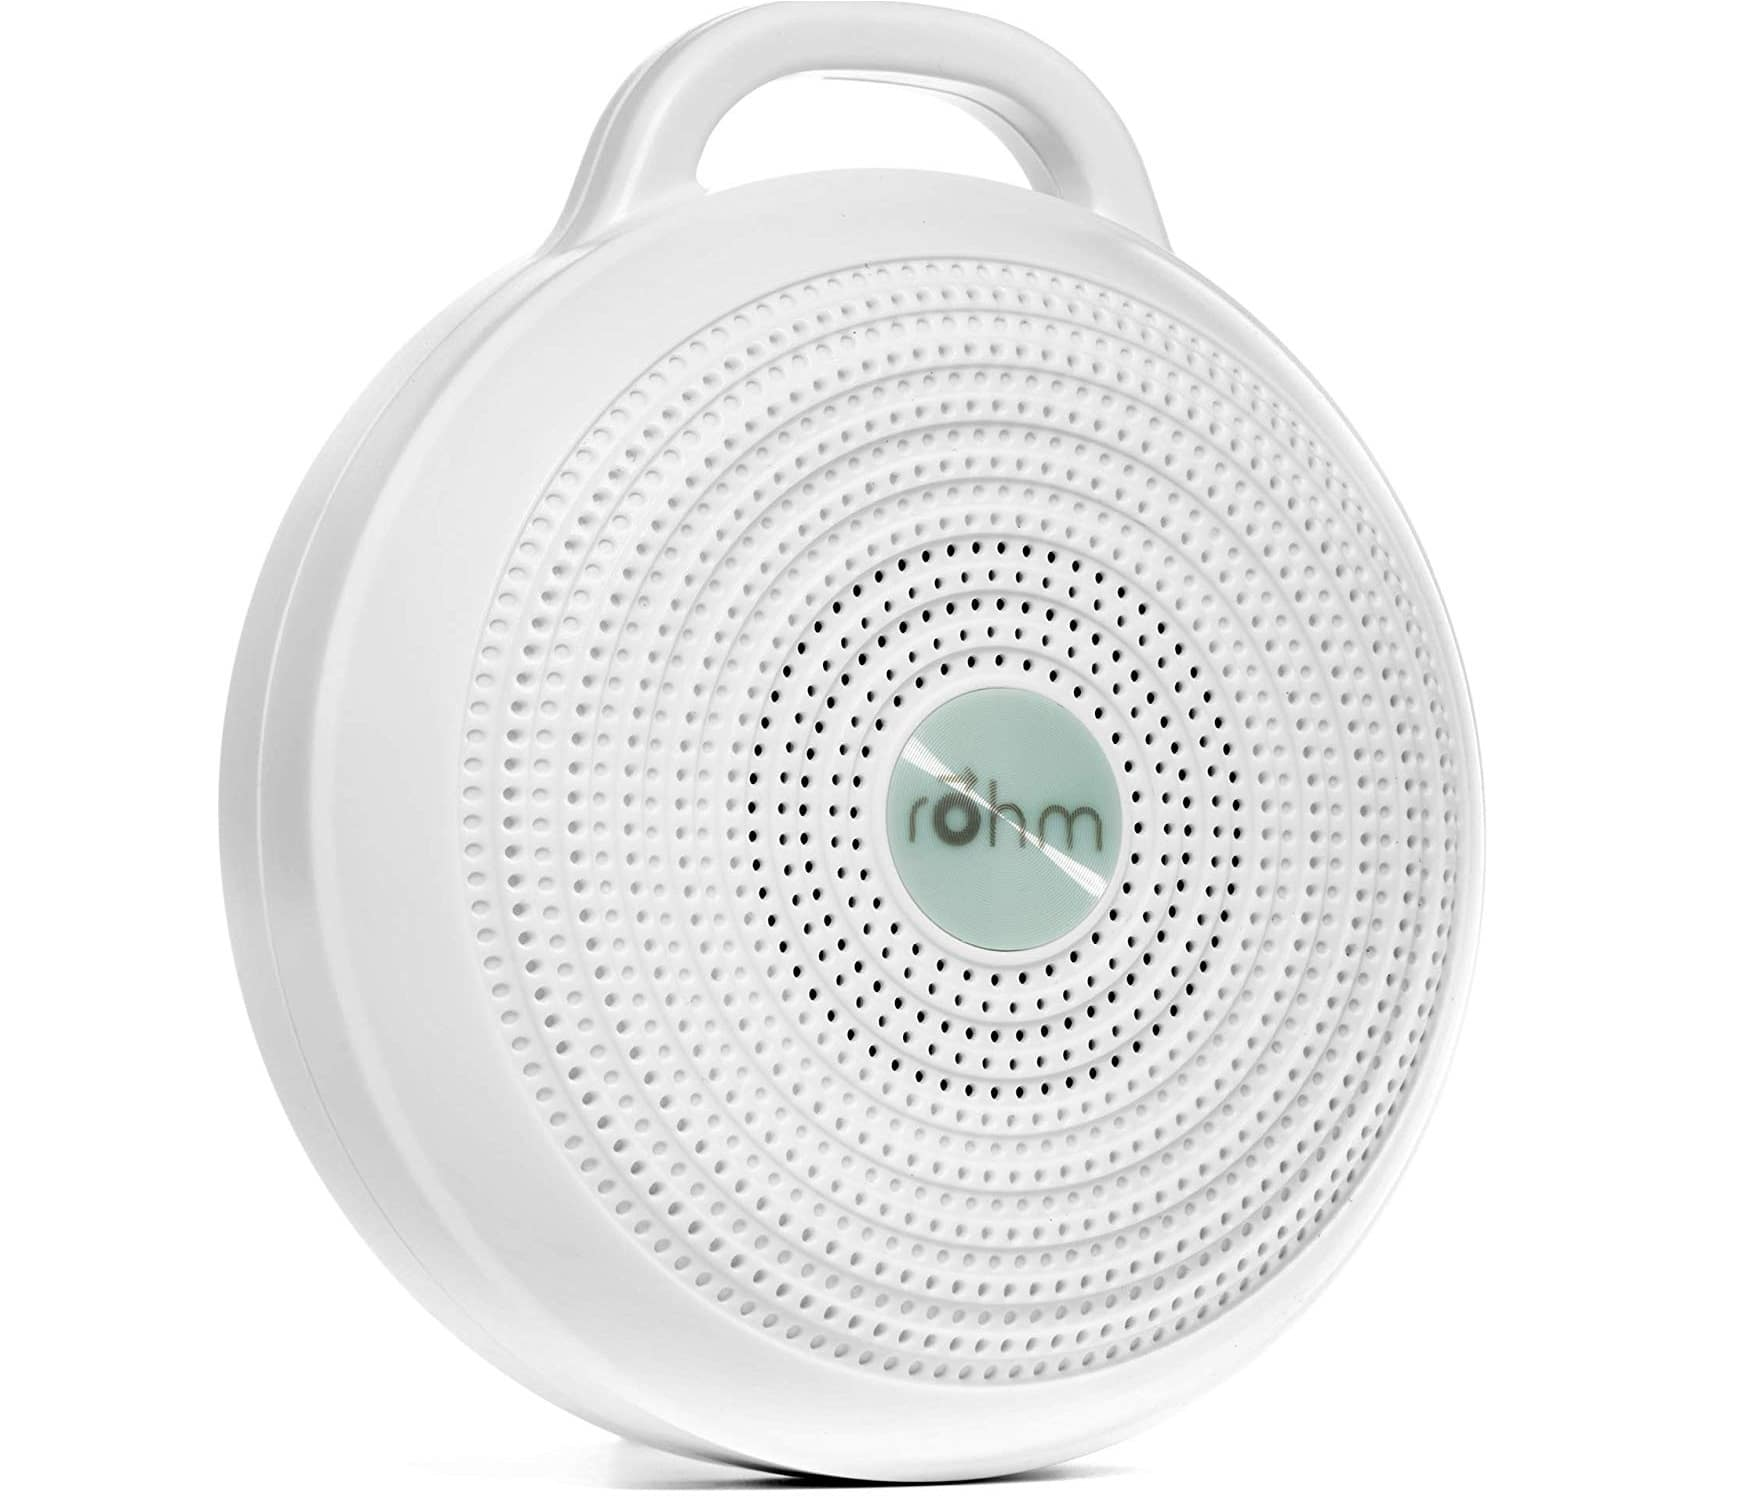 4.Marpac Rohm Portable White Noise Machine for Travel 3 Soothing, Natural Sounds with Volume Control Compact Sleep Therapy for Adults & Baby